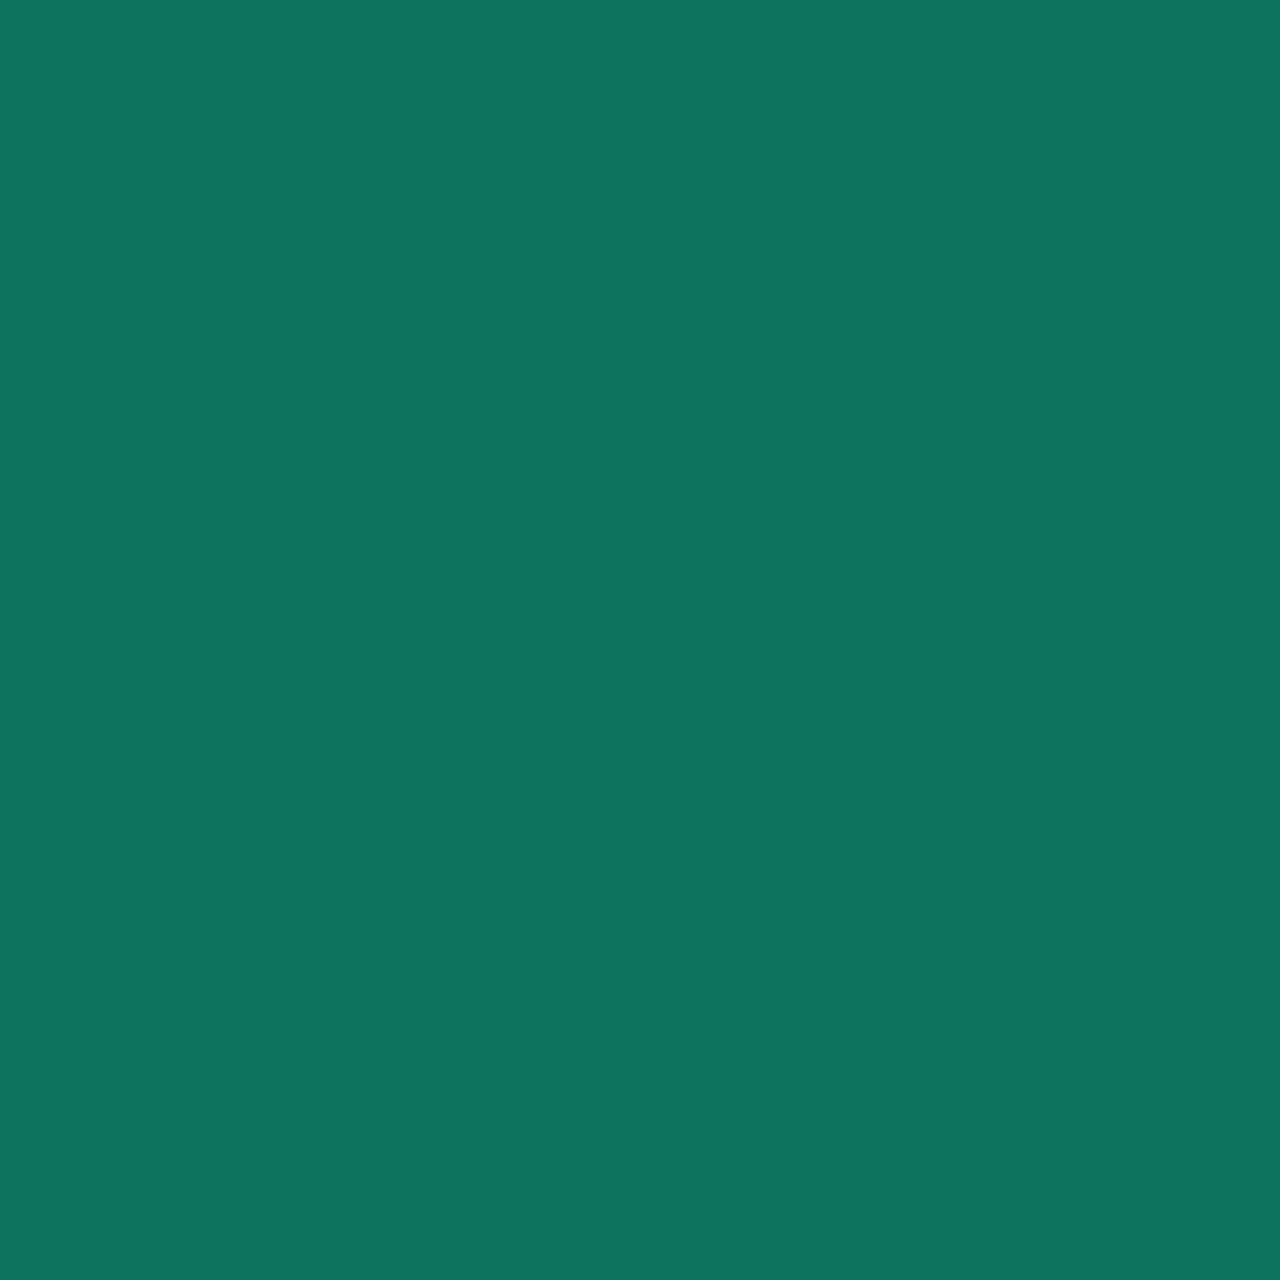 #0094 Rosco Gels Roscolux Kelly Green, 20x24""